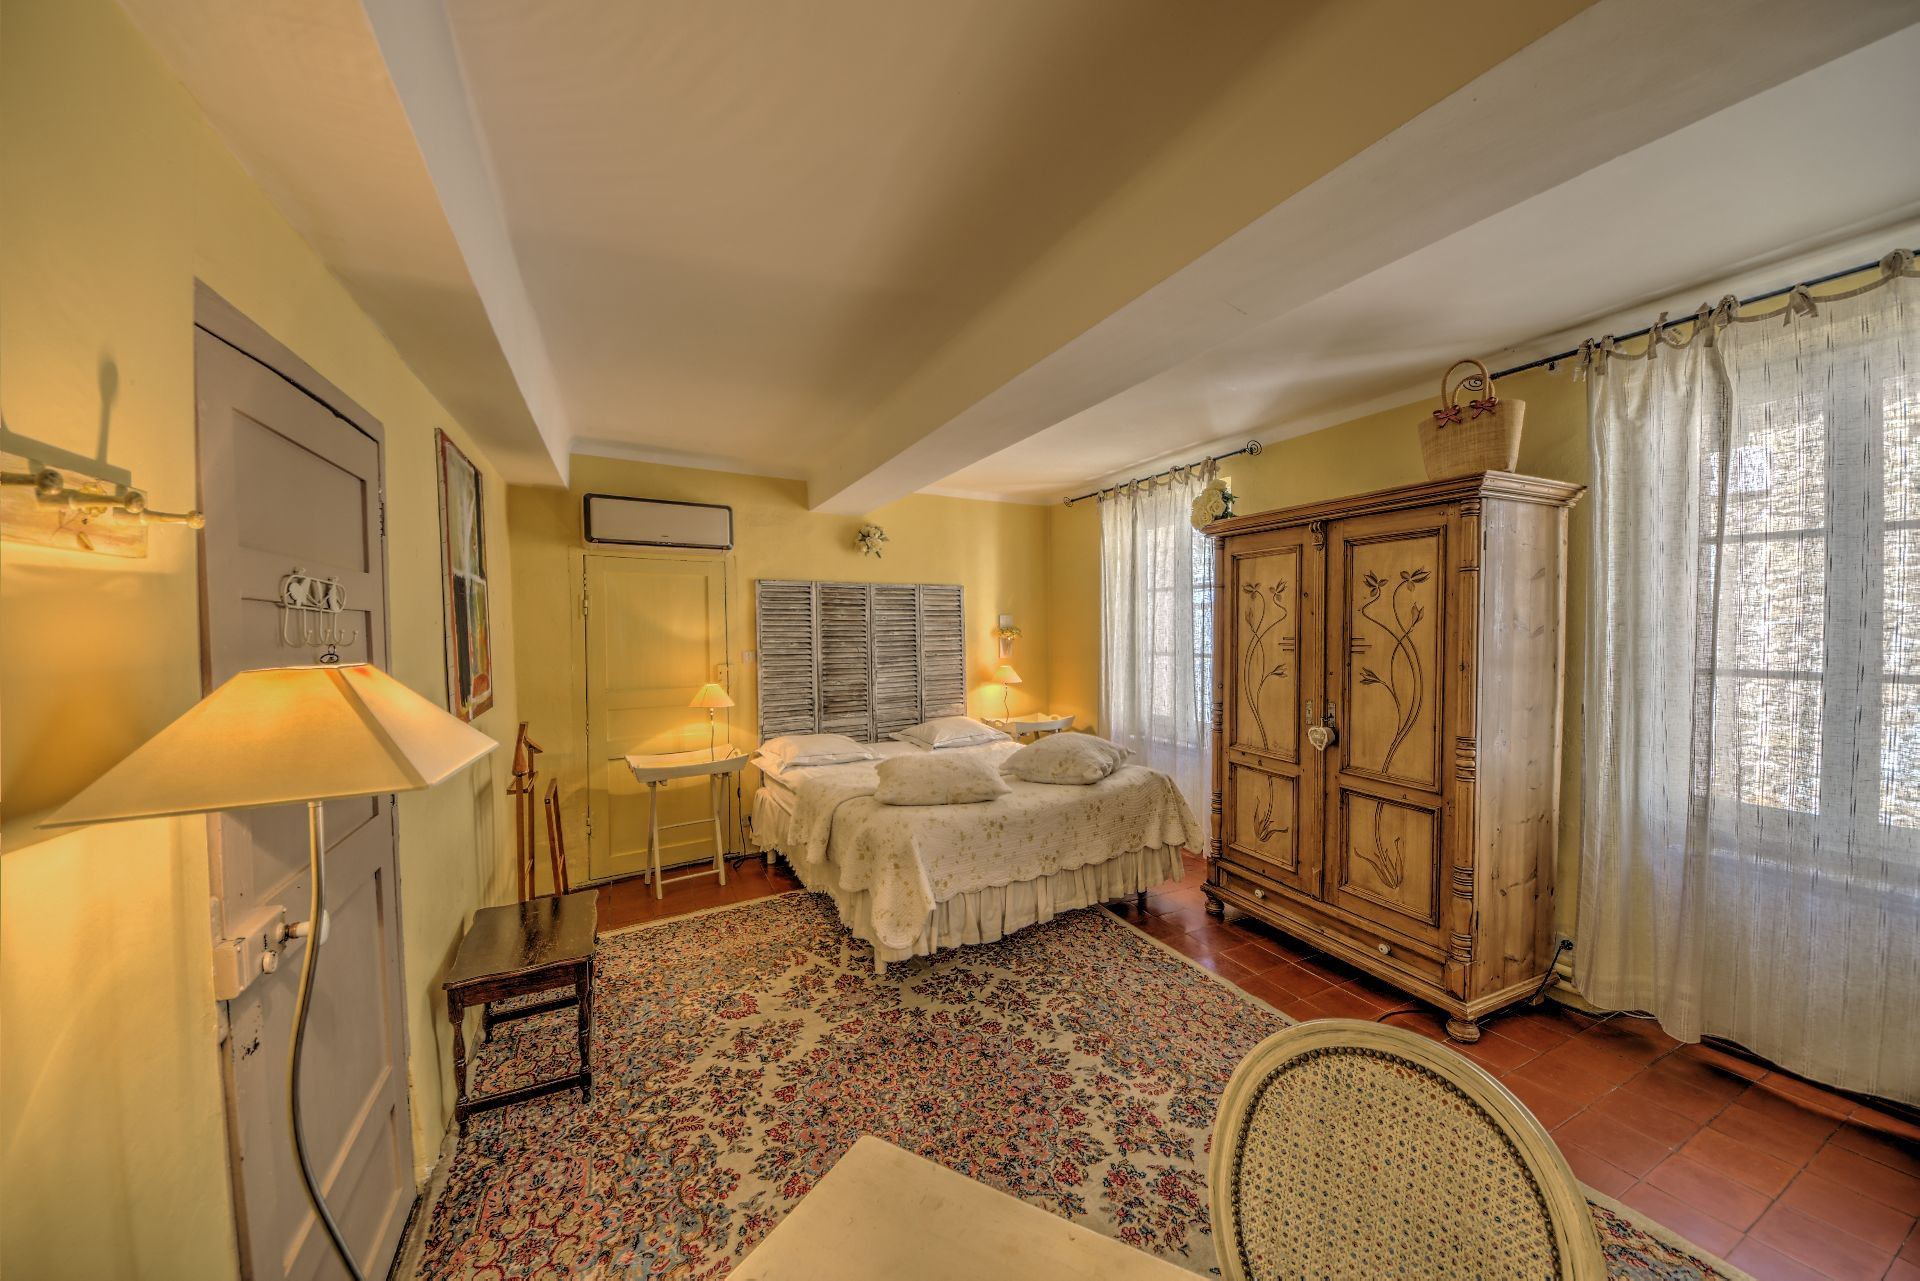 Suite 4 of the guest house with garden and pool Rocbaron, Var, Provence